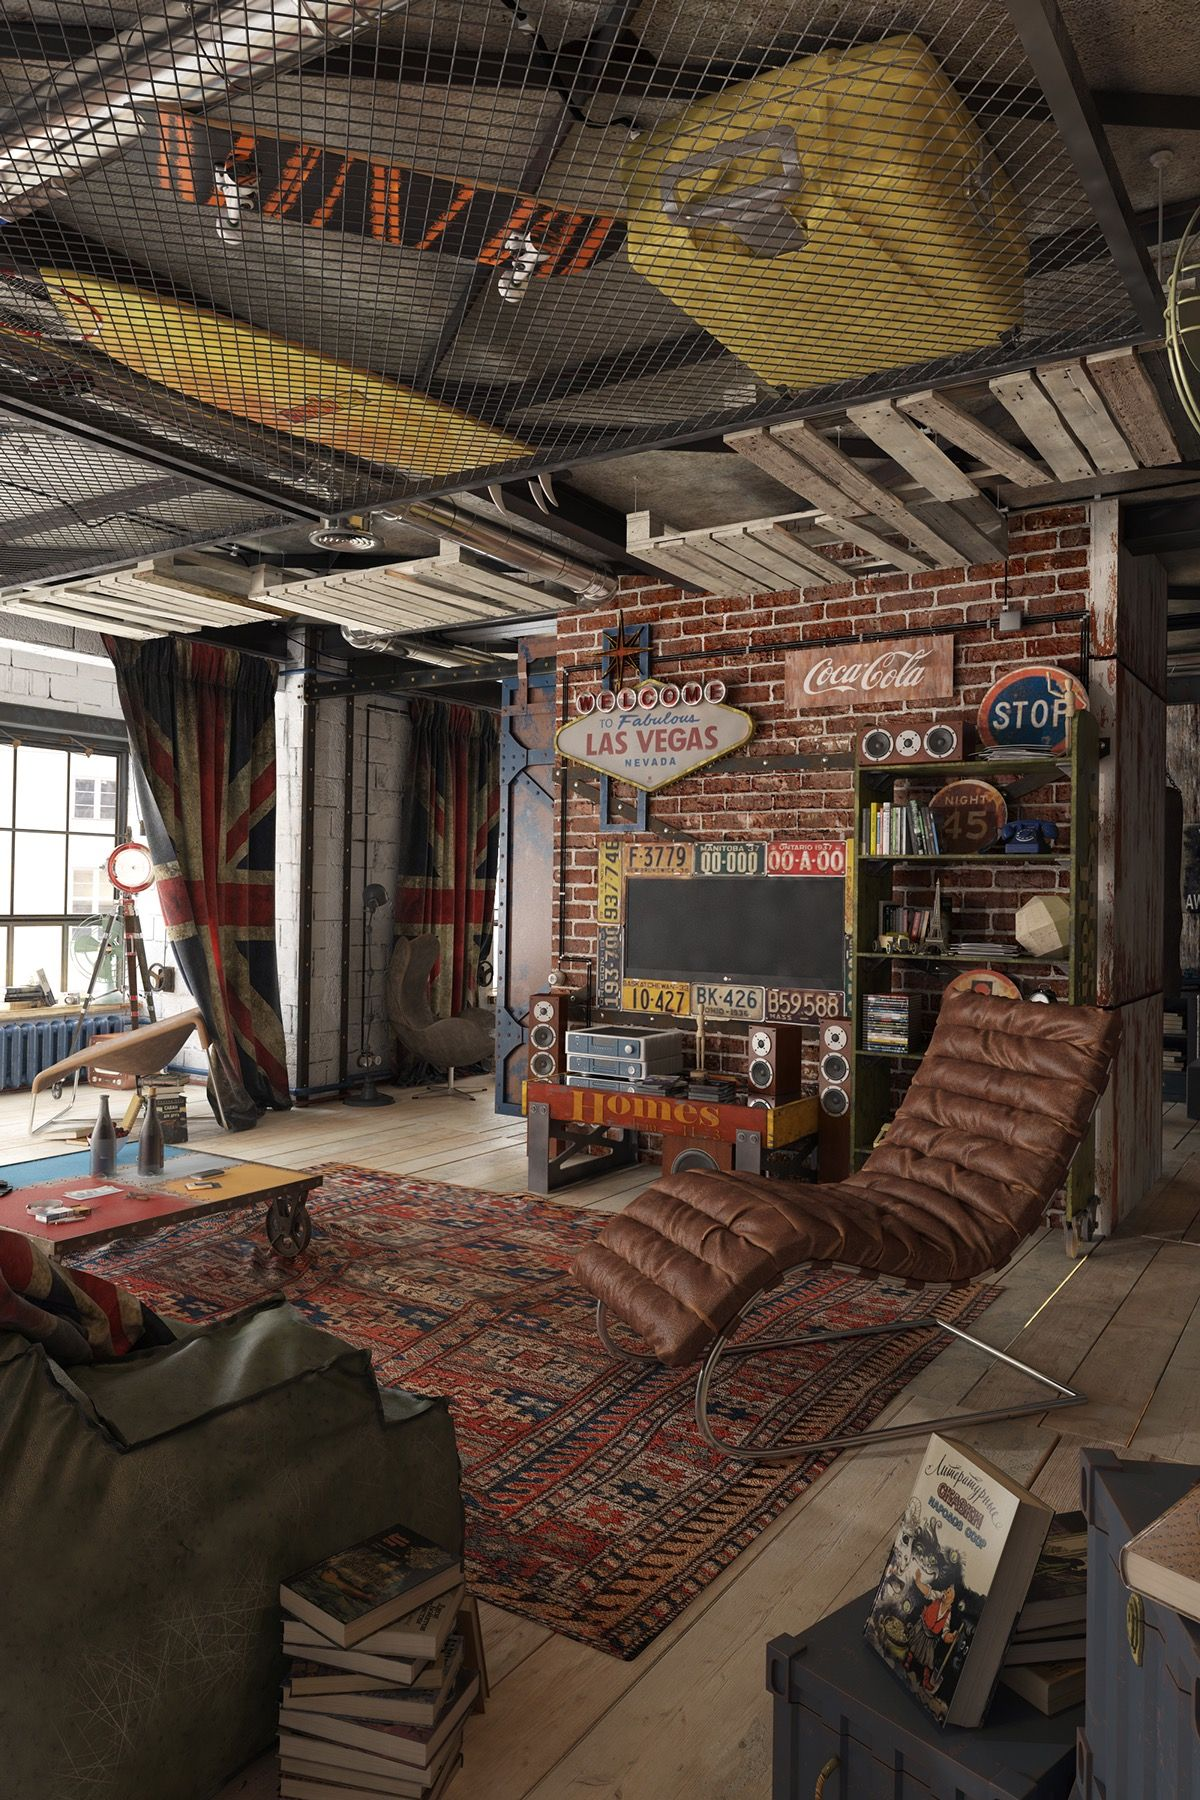 04e74a32 This is a pretty well thought out industrial space. The vintage pieces  really add a lot of character.